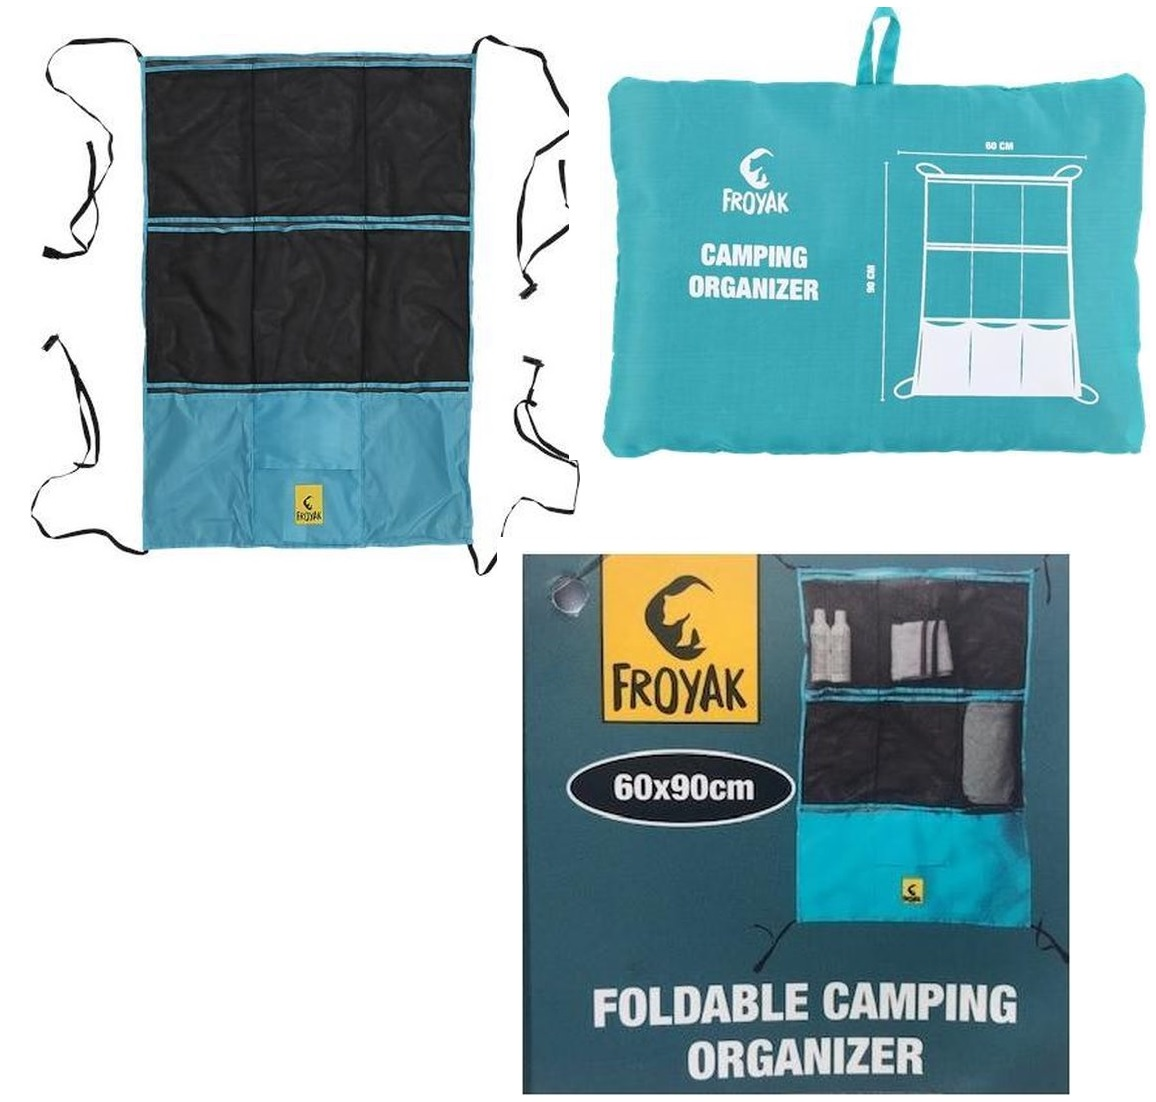 Foldable camping organizer 60x90cm